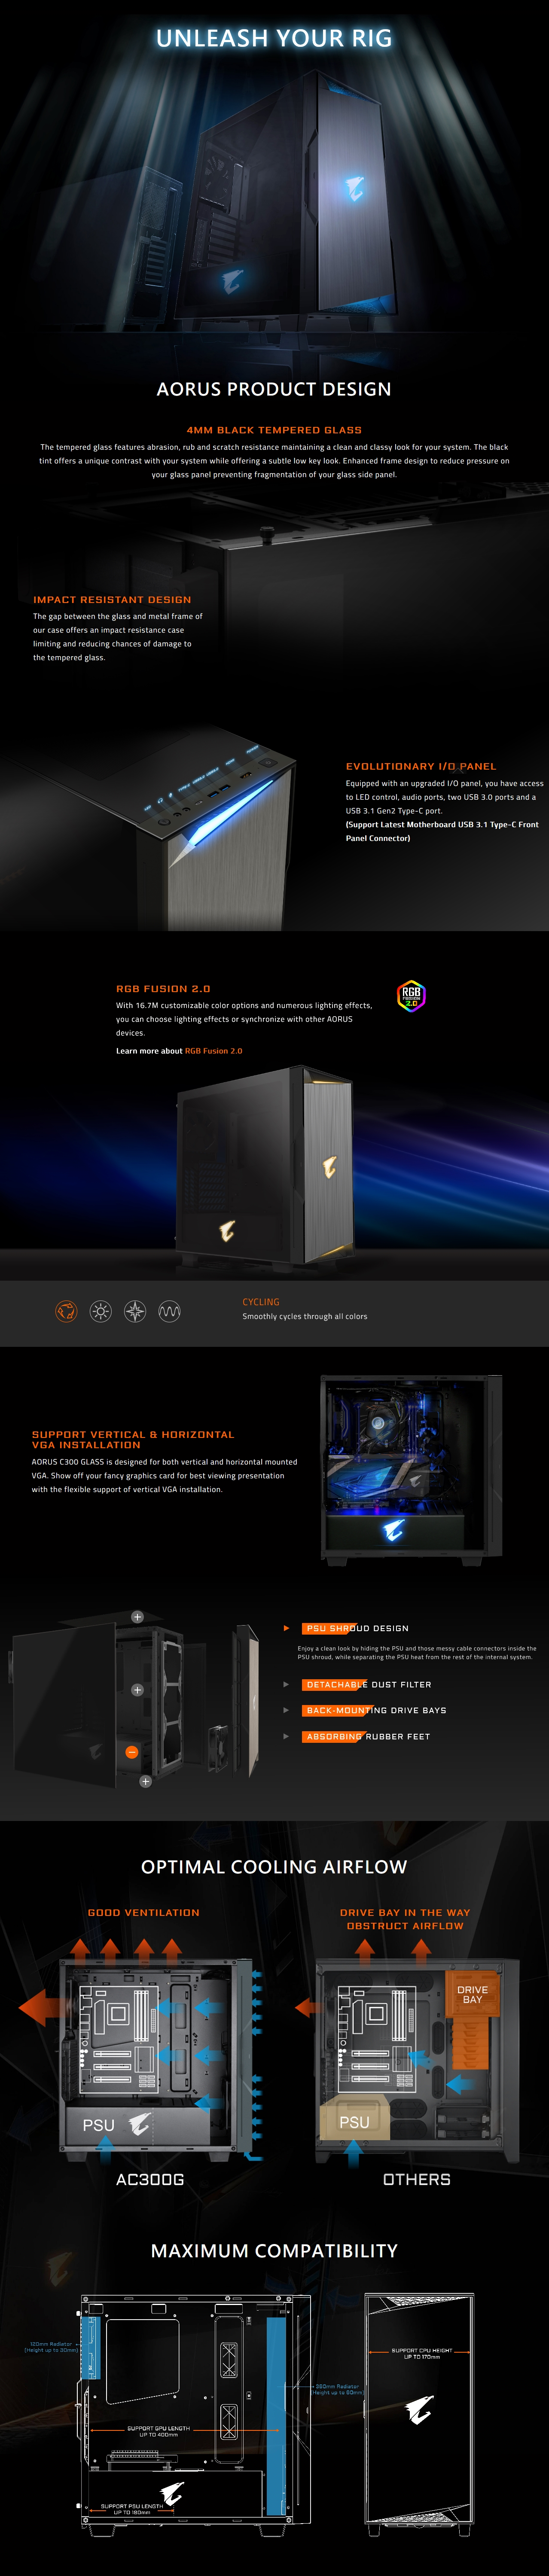 A large marketing image providing additional information about the product Gigabyte AC300G ATX Mid Tower Case w/ Tempered Glass Side Panel - Additional alt info not provided